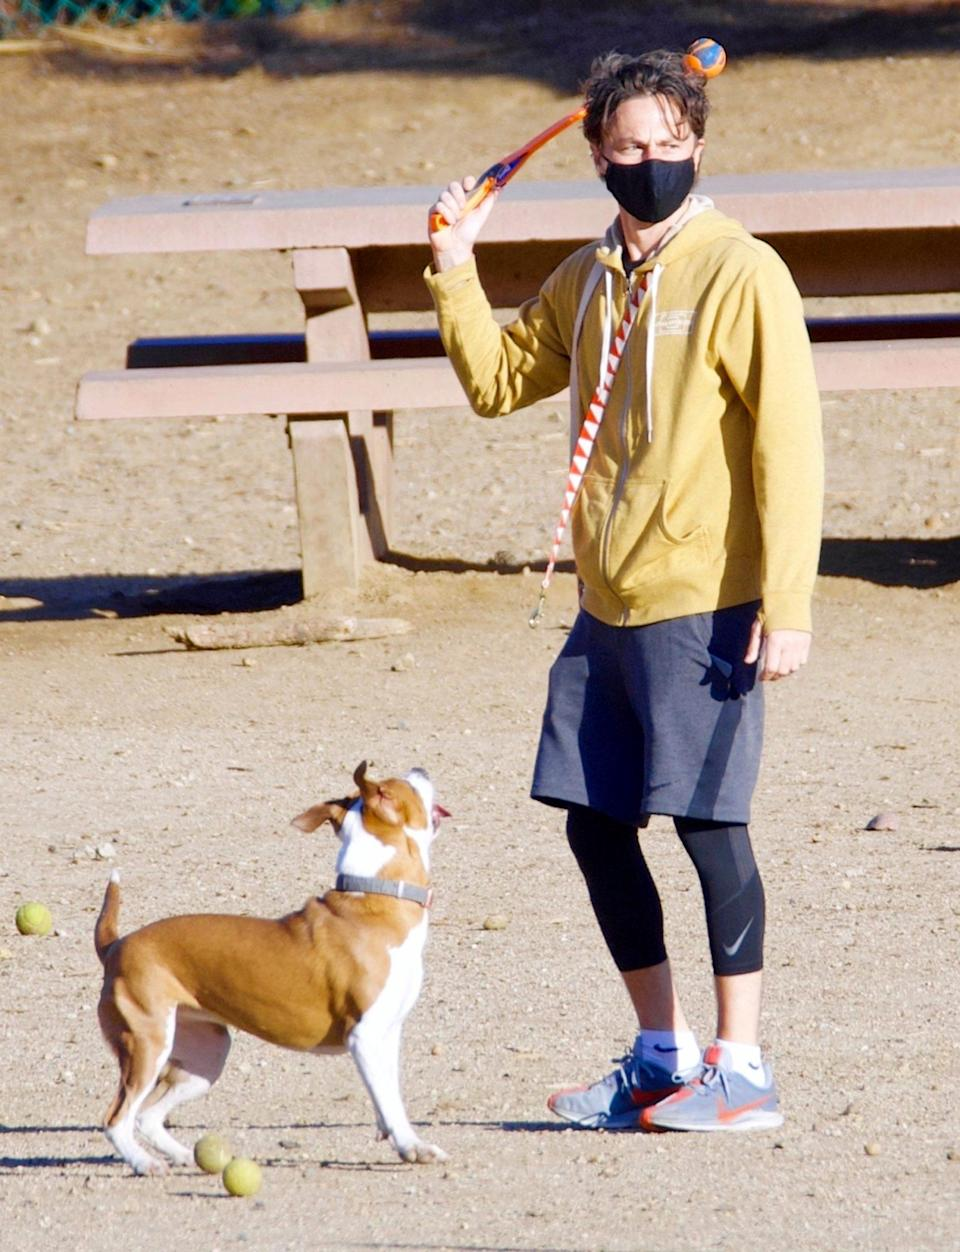 <p>Zach Braff and his pup play some fetch on Sunday during a dog park trip in N.Y.C.</p>